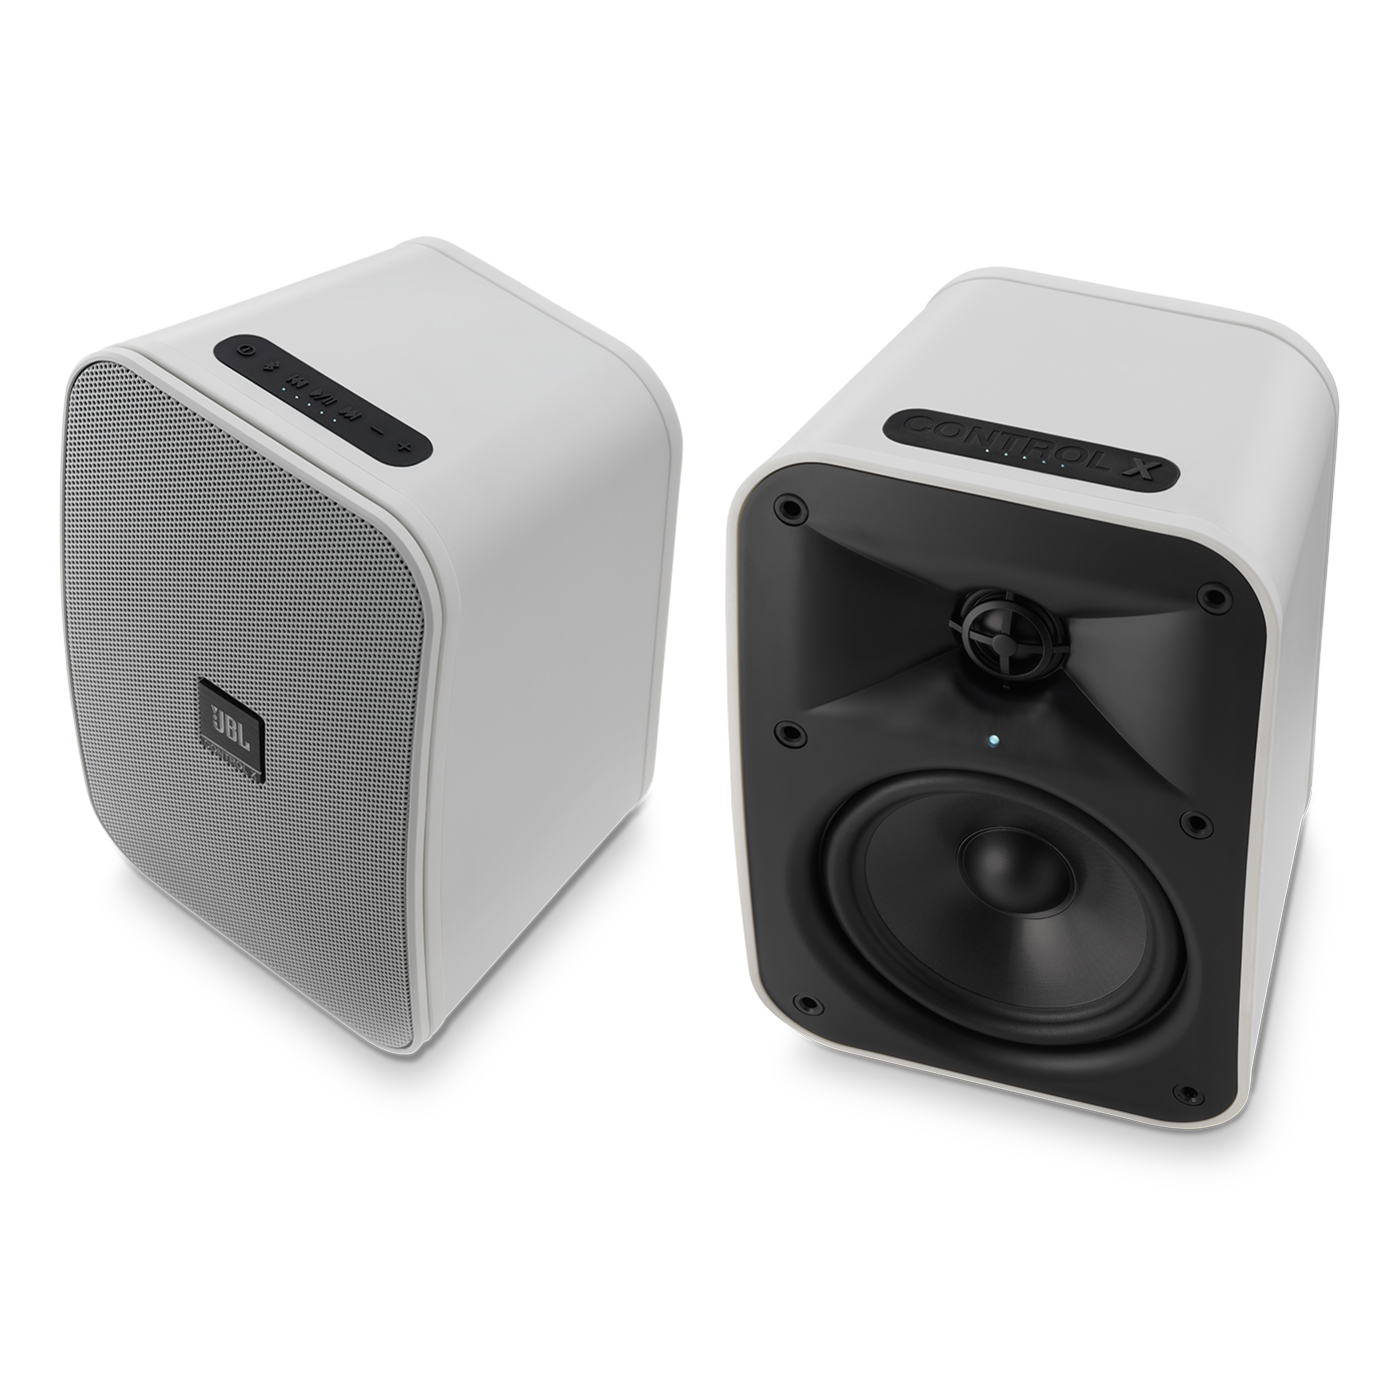 "Jbl Bluetooth Portable Speaker Pairing: JBL Control X Wireless 5.25"" Portable Stereo Bluetooth"